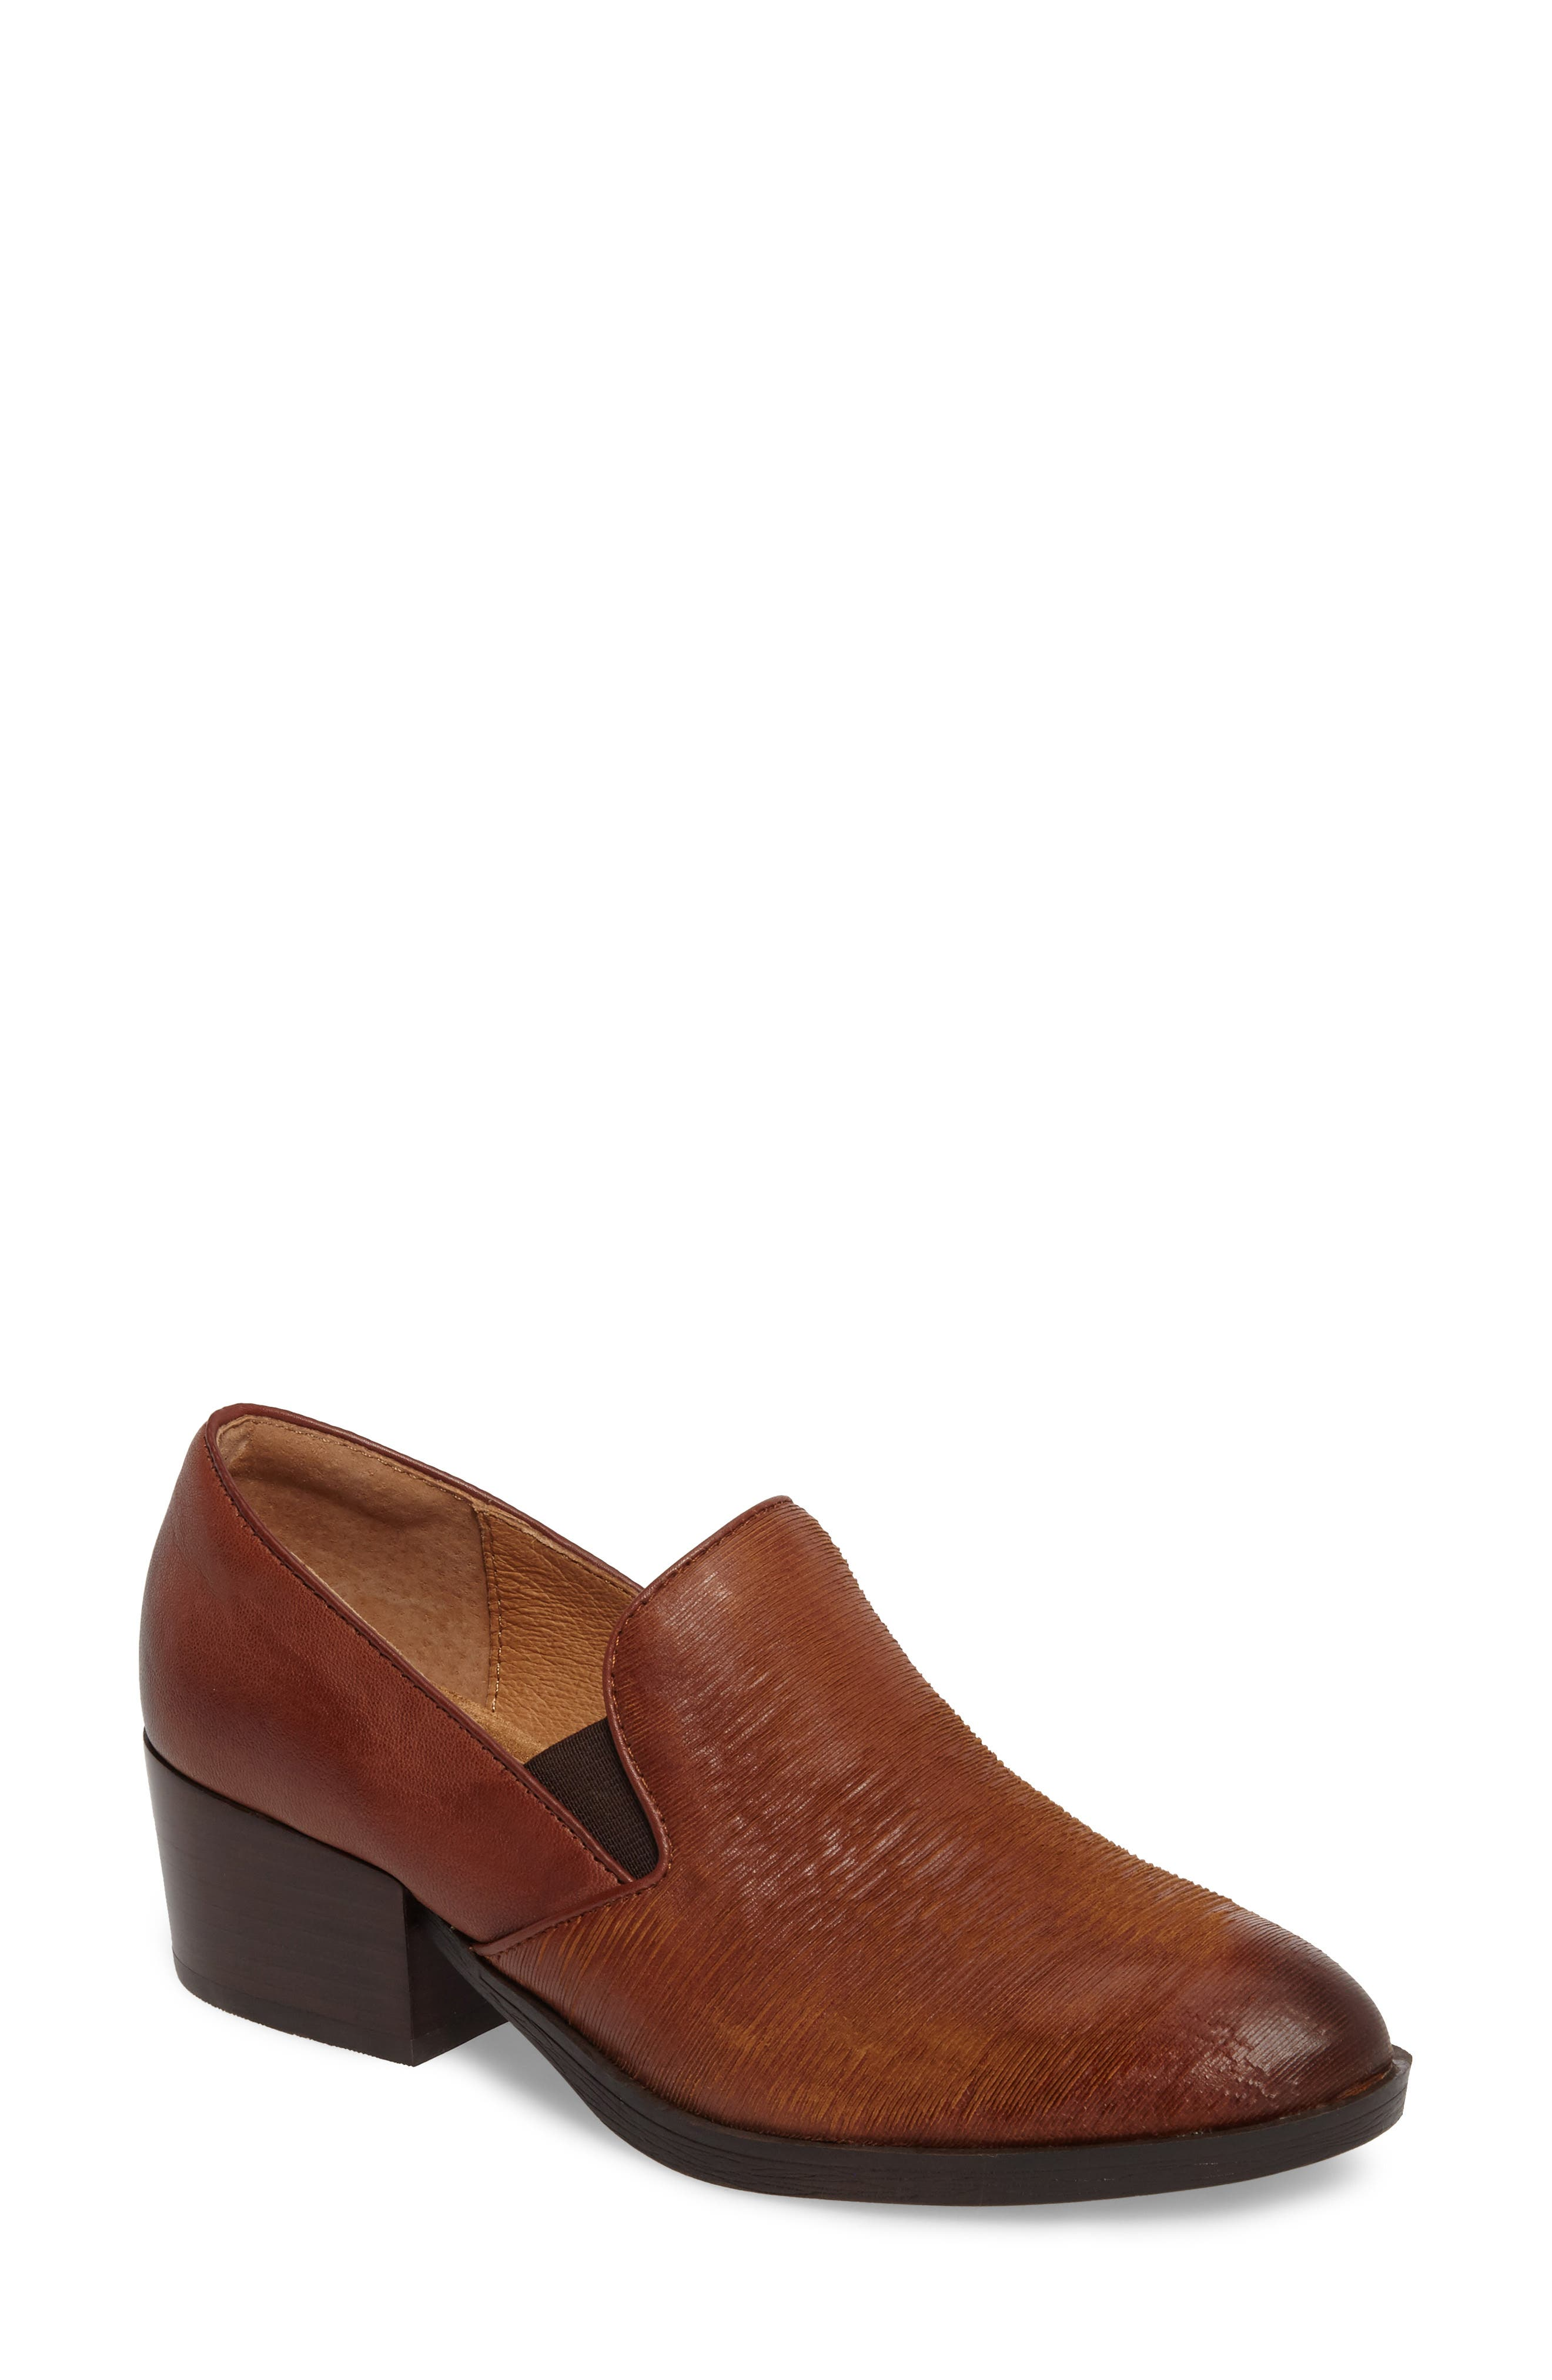 Sofft Velina Pump, Brown